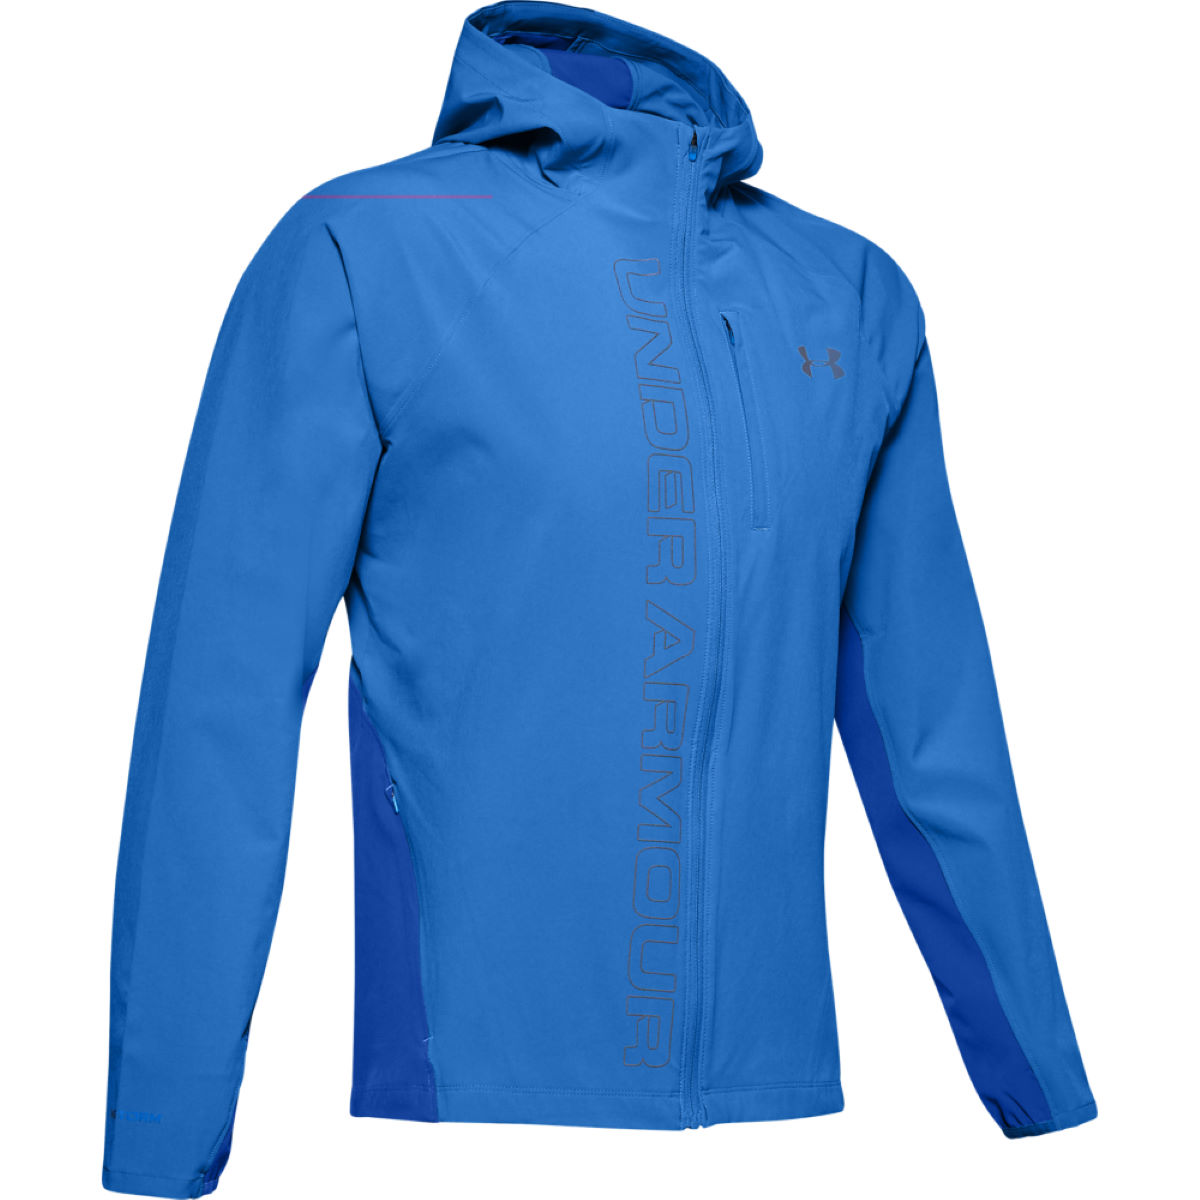 Under Armour Under Armour Qualifier OutRun the STORM Jacket   Jackets